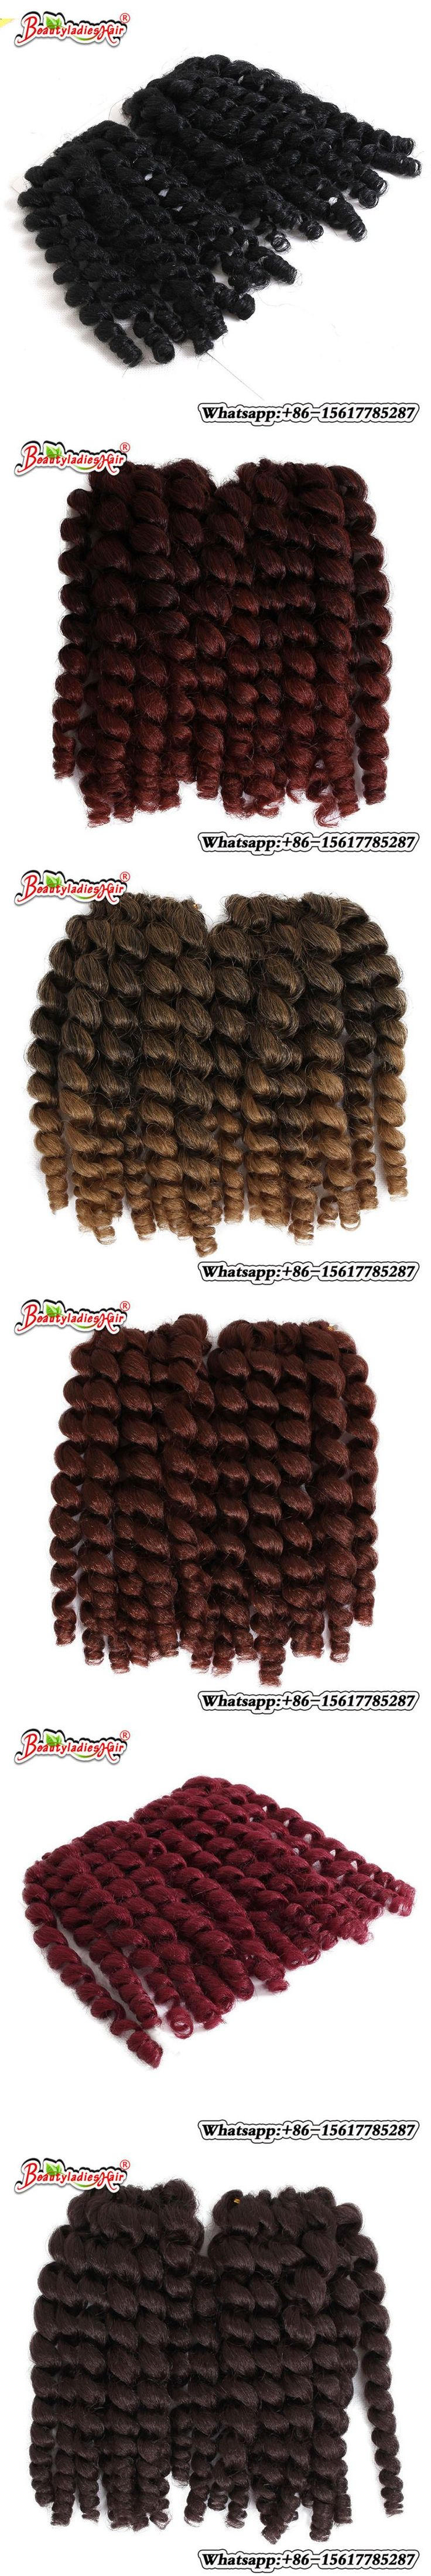 "Wand Curl Crochet hair extensions Ombre Twist Braiding Jamaican Bounce hair Synthetic hair Extension 8"" 22 Roots 1 pack"